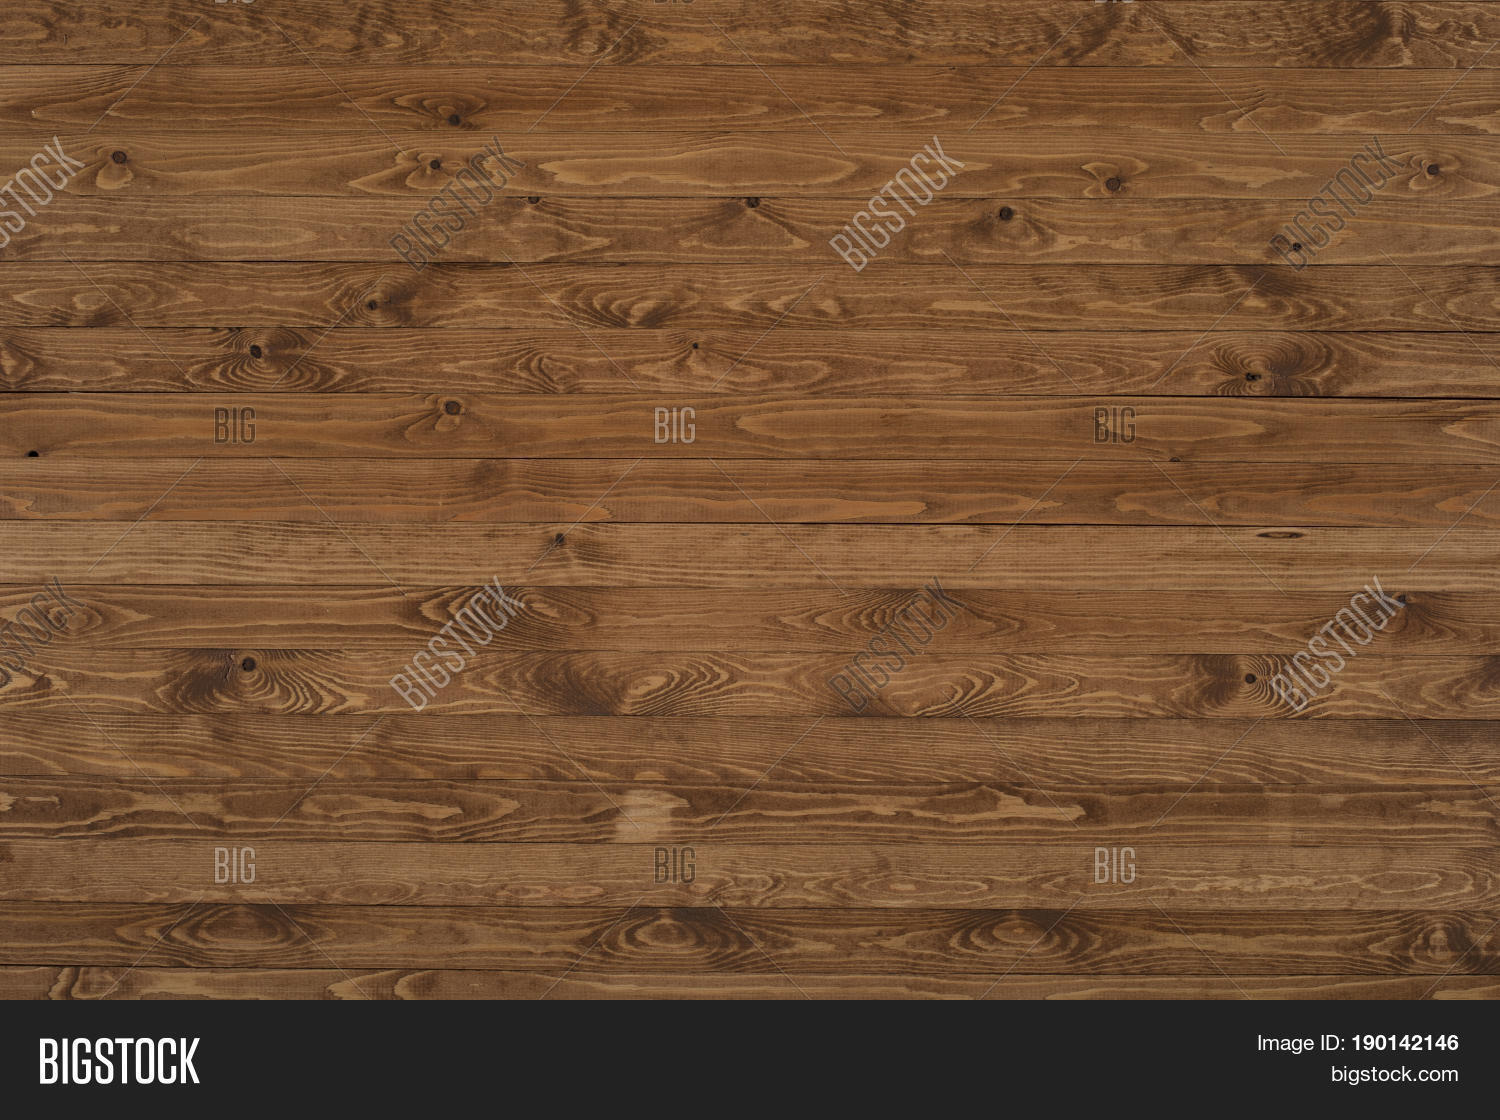 Wall Wooden Texture Image Photo Free Trial